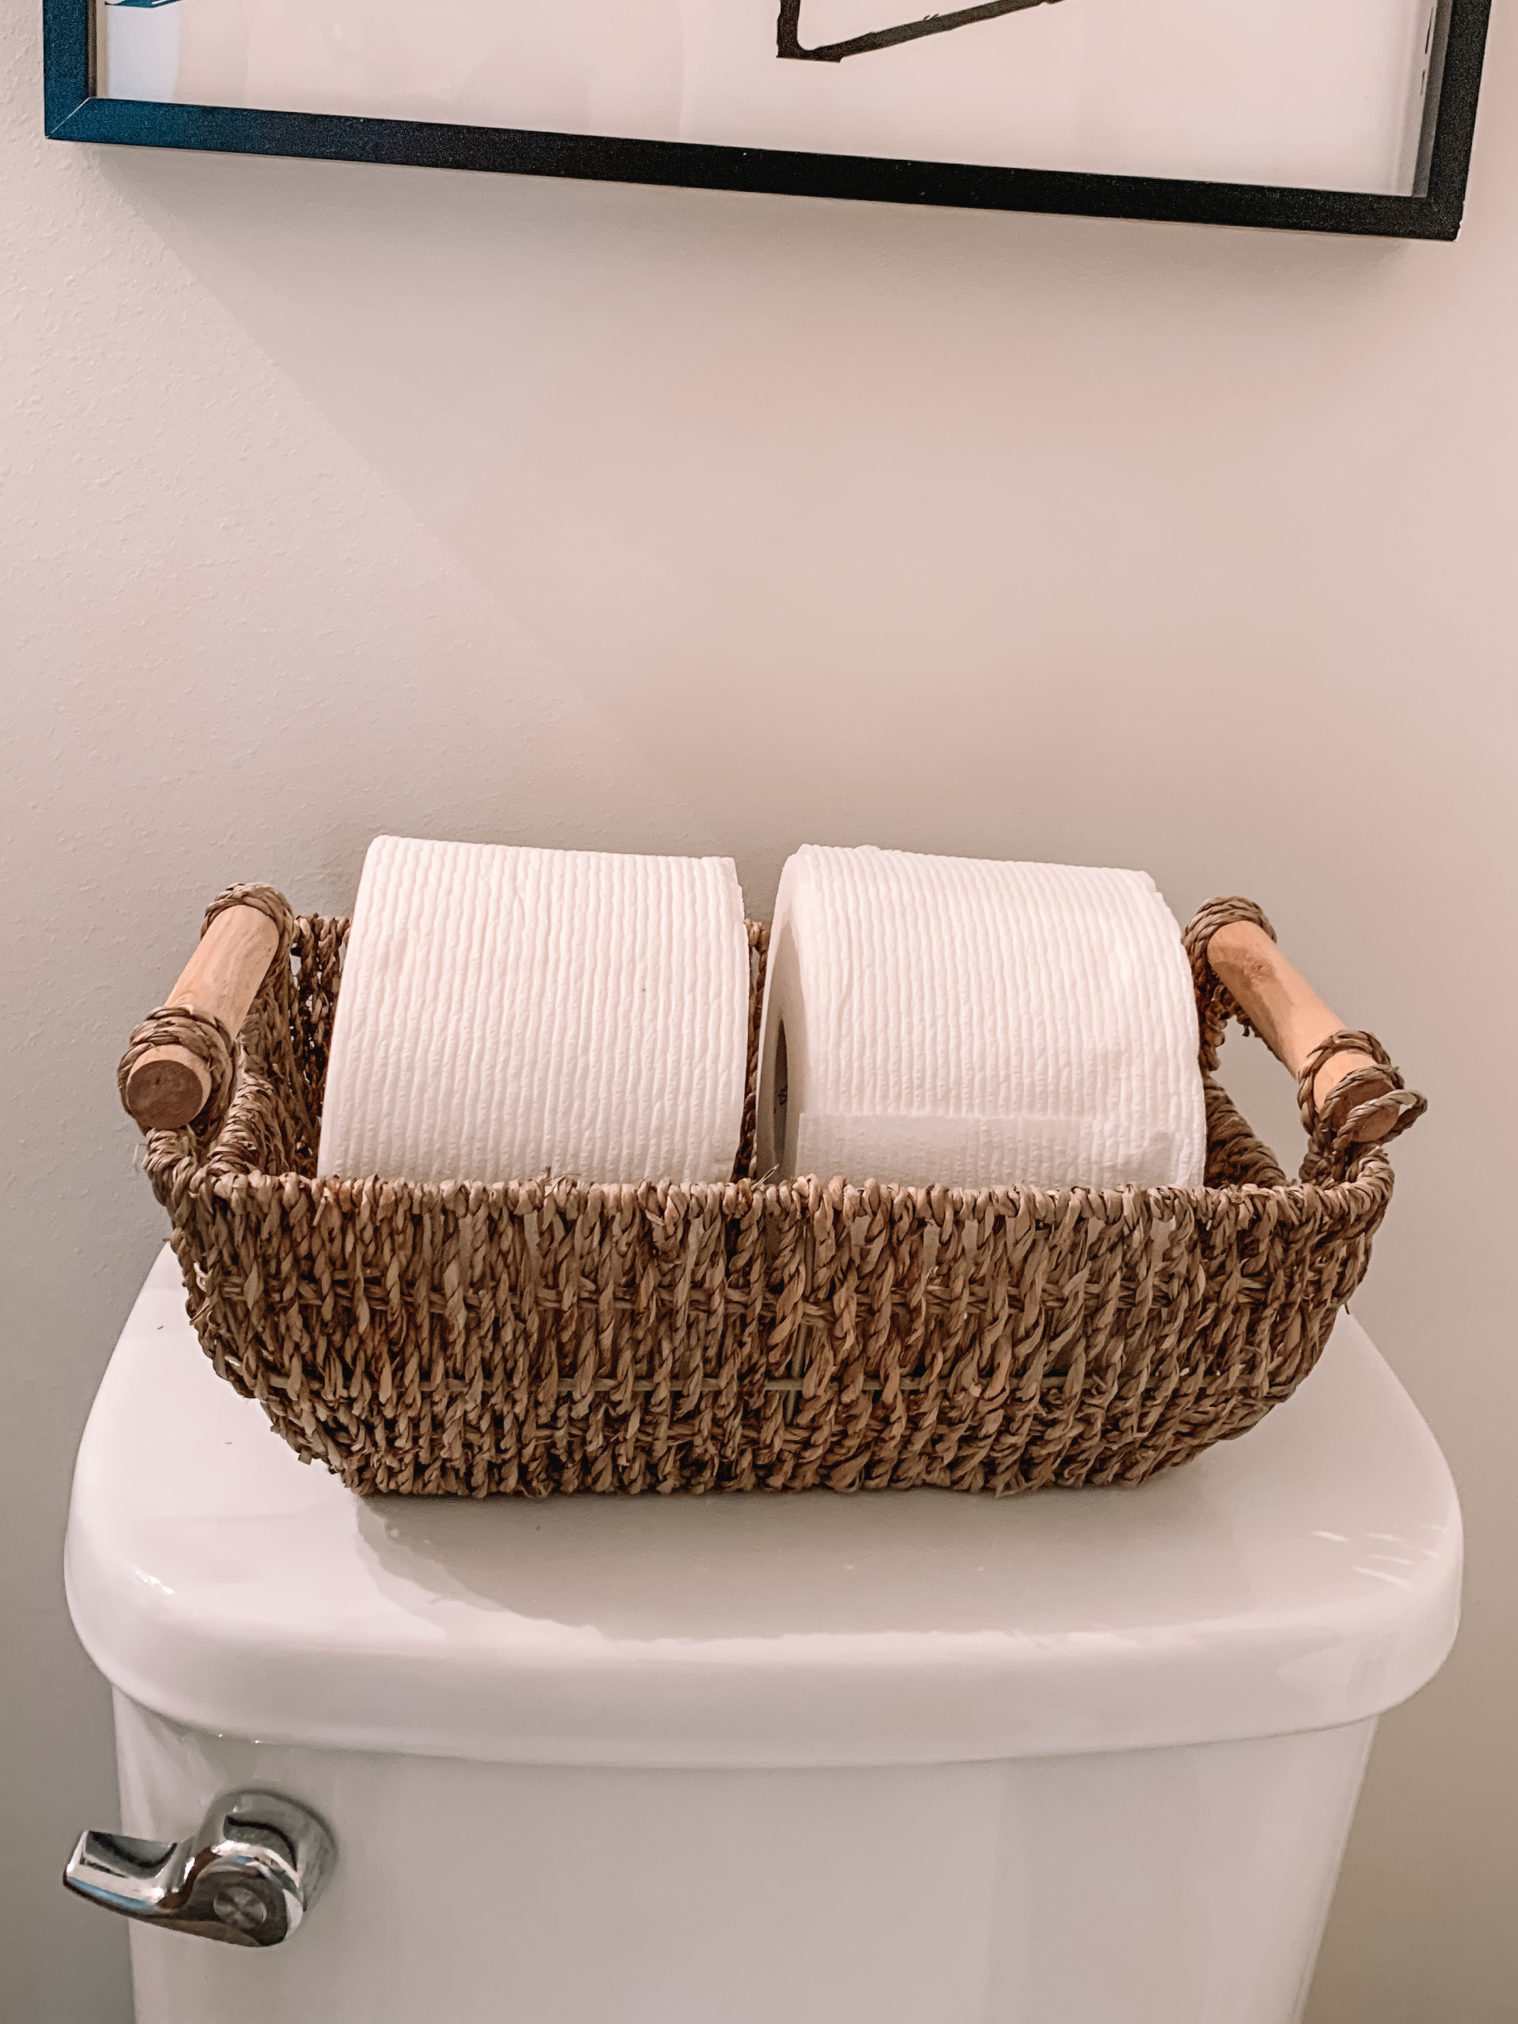 amazon home, amazon home decor, toilet paper holder, seagrass basket